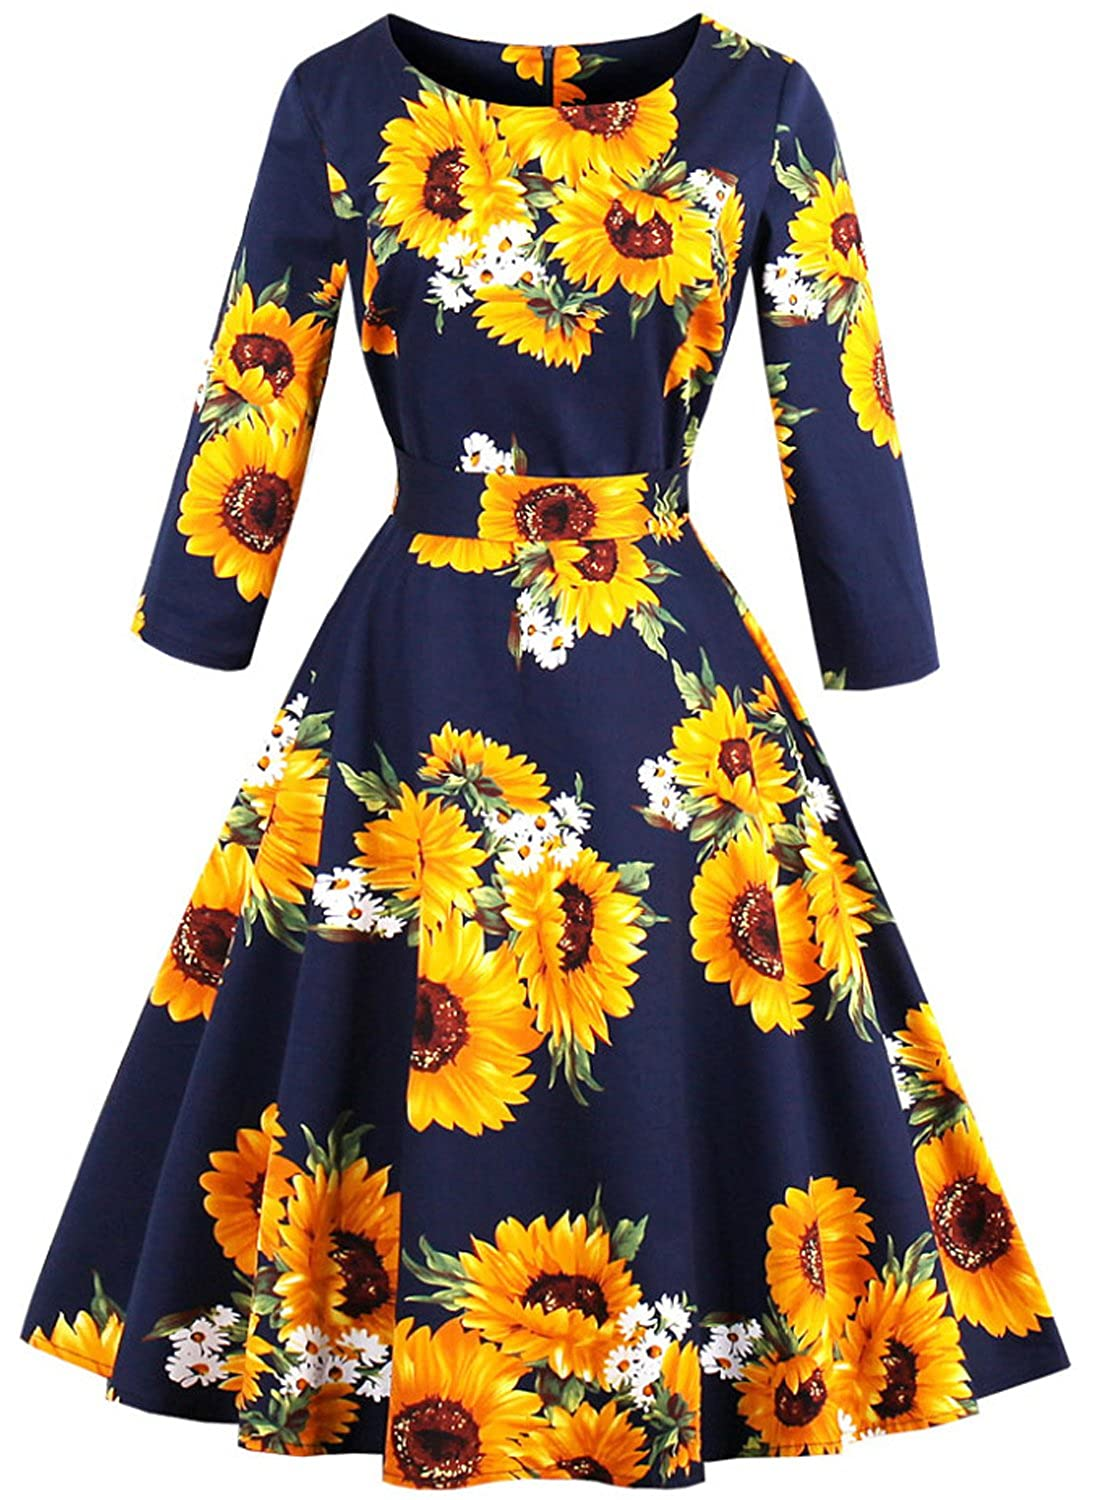 MERRYA Women's Vintage 1950s Floral Print Long Sleeve Cocktail Swing Dress